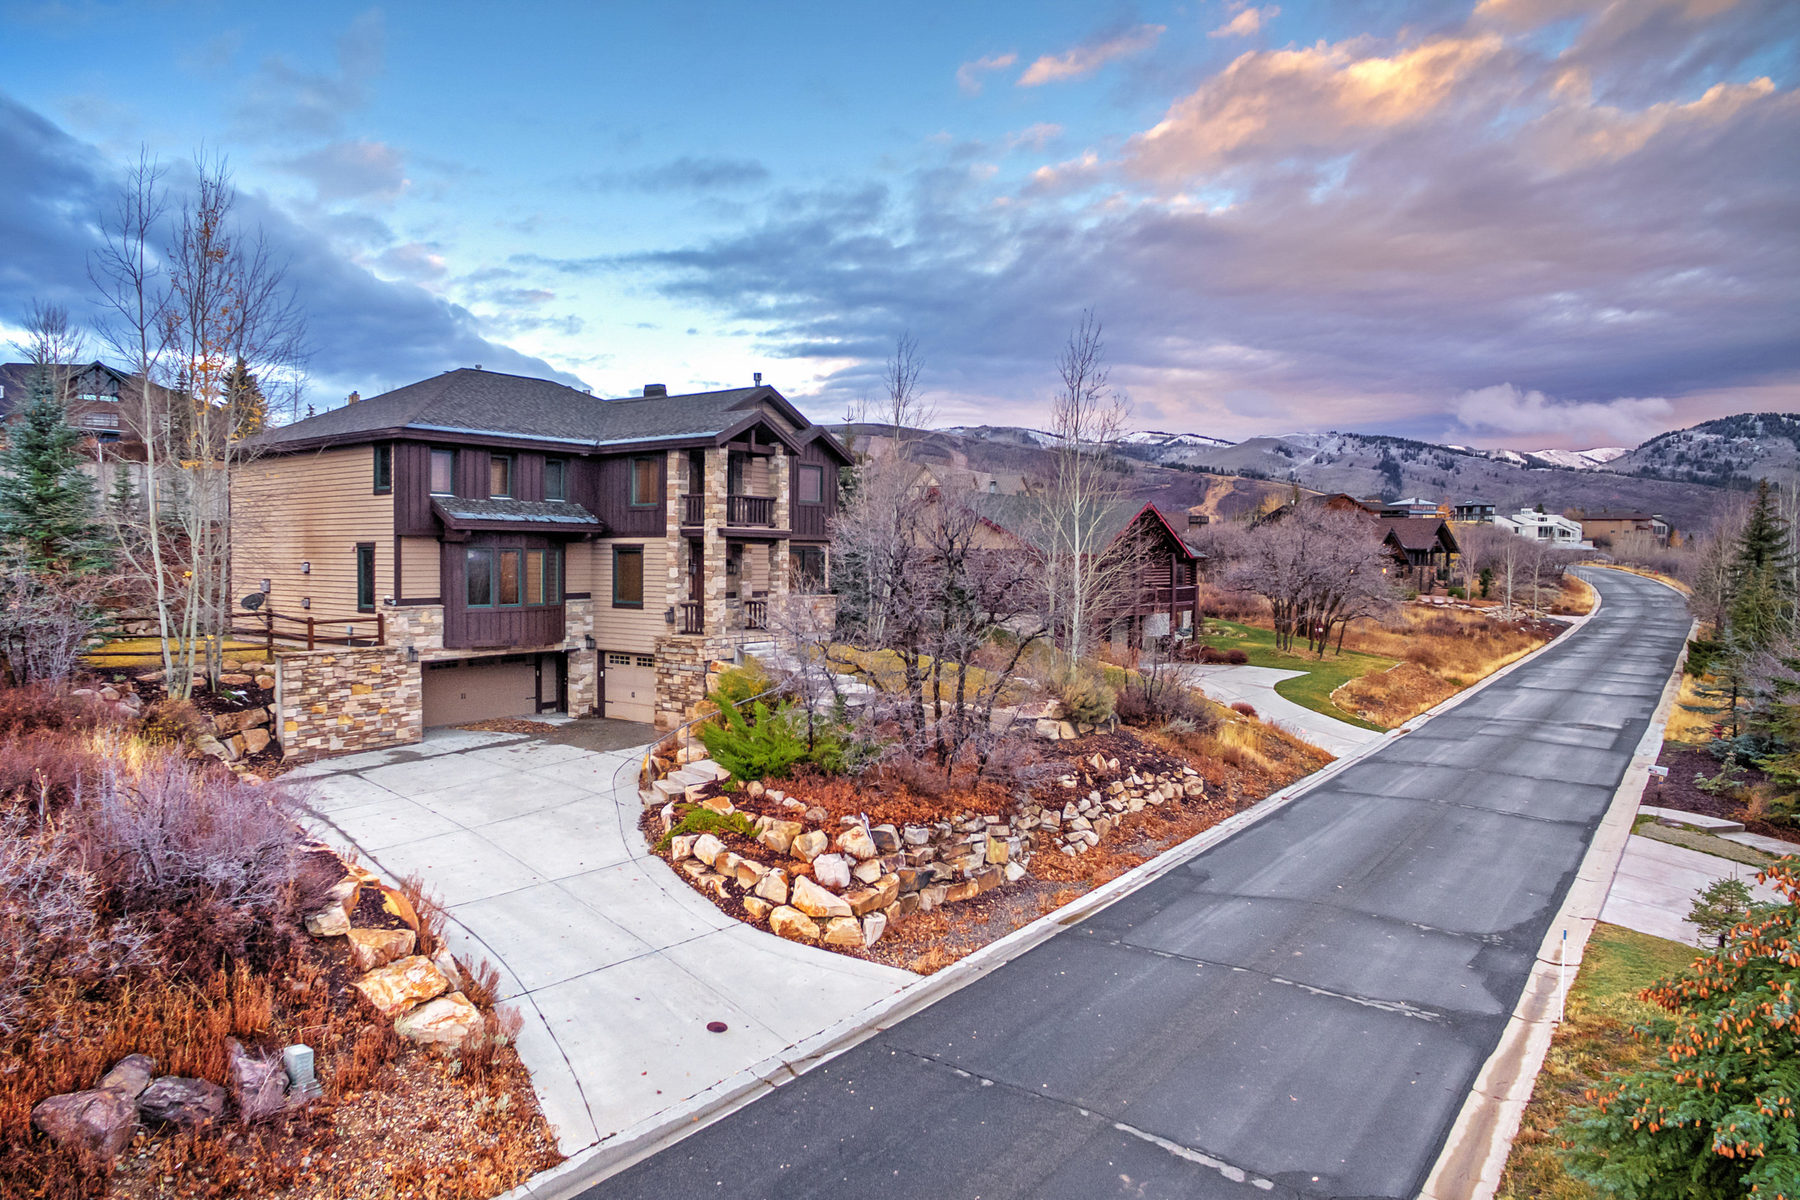 Single Family Home for Sale at Custom Mountain Home in Coveted Aerie 1539 Aerie Dr Park City, Utah 84060 United States